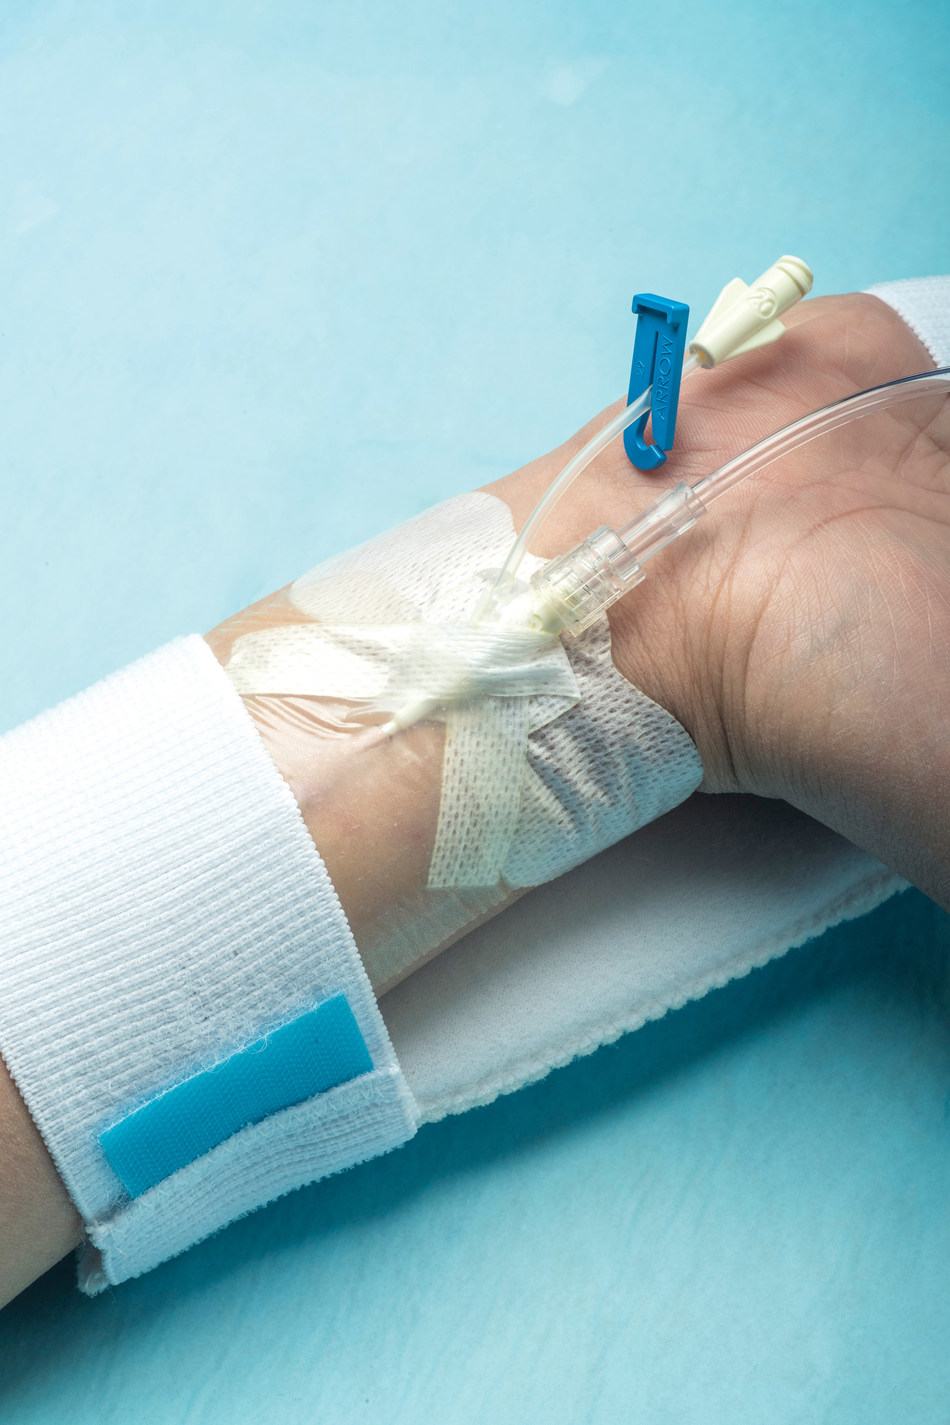 Dale Hold-n-Place Catheter Securement devices